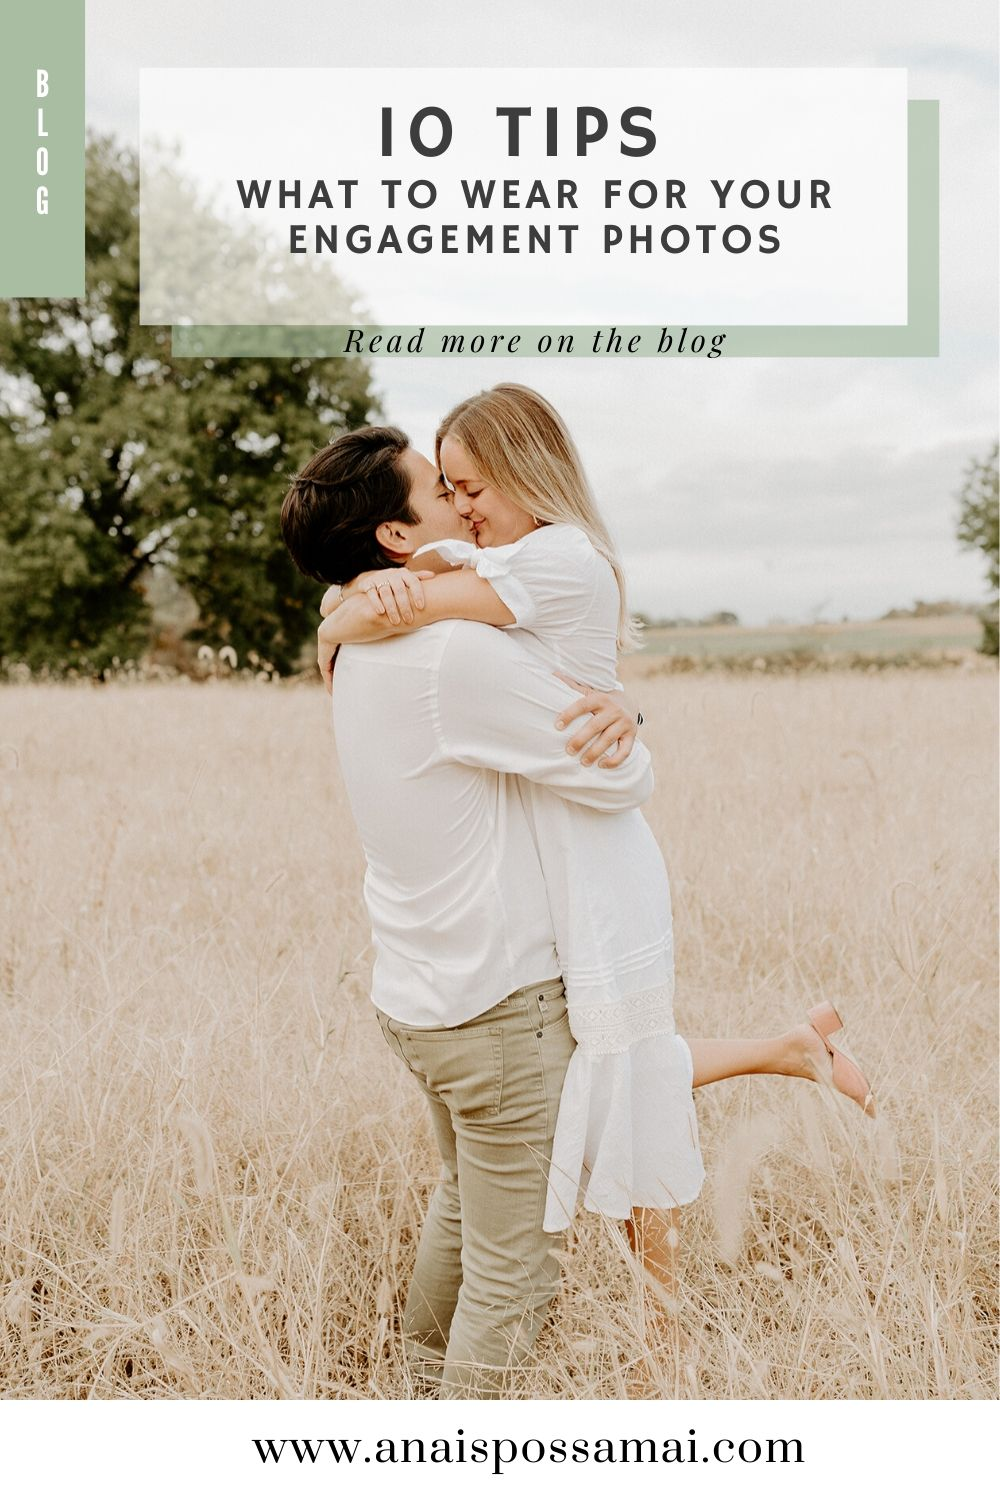 What To Wear For Your Engagement Photos 10 Tips On What To Wear For Your Engagement Session Anais Possamai Photography